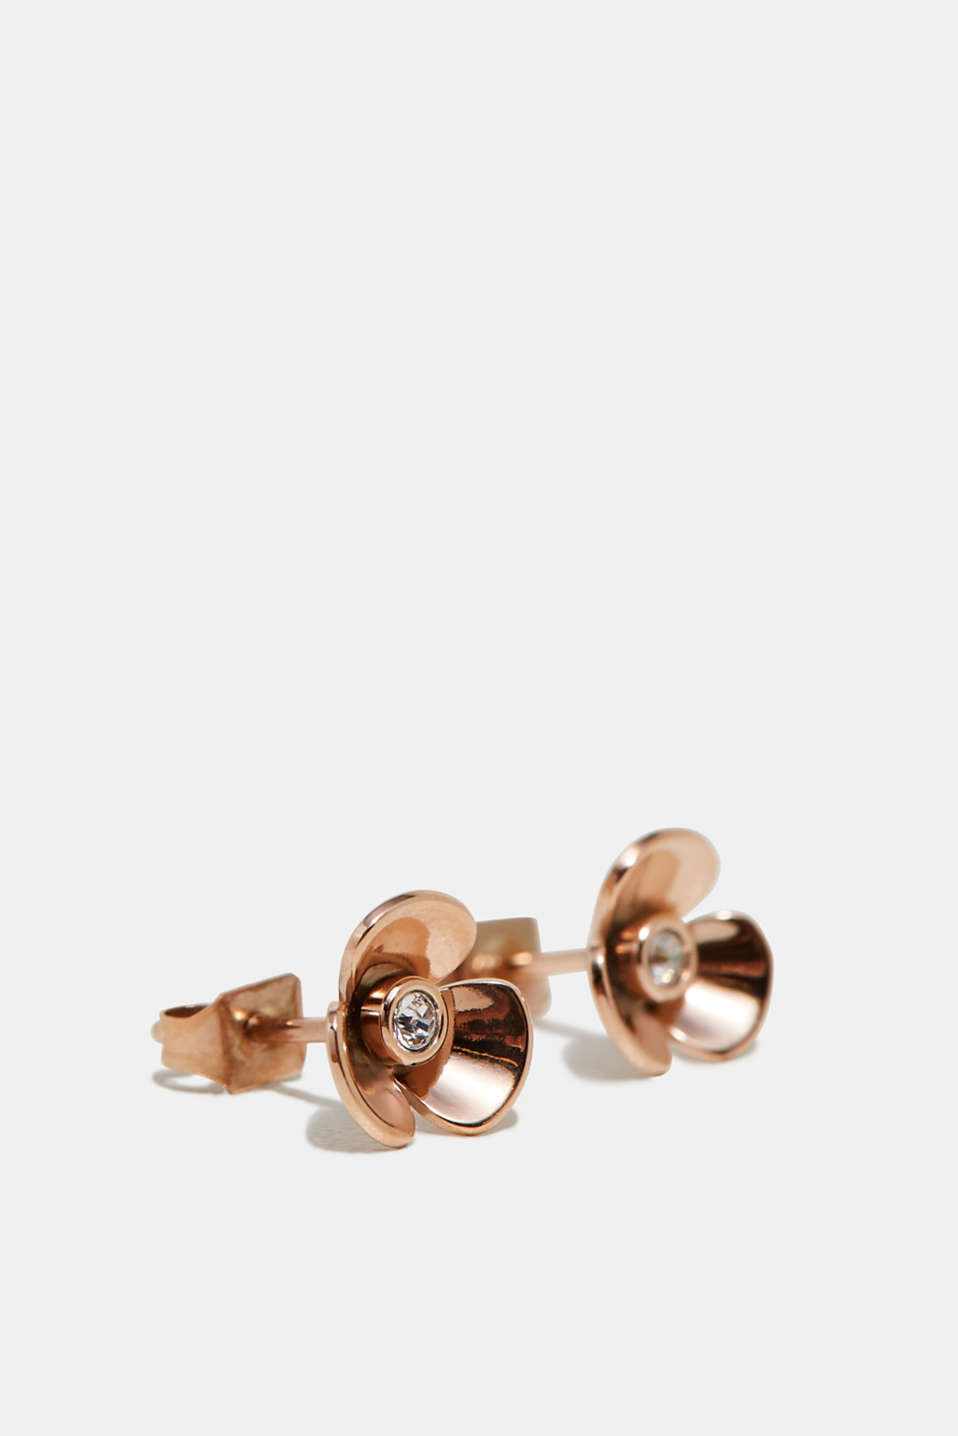 We love flowers! The three dimensional flower shape gives these stud earrings their feminine look.